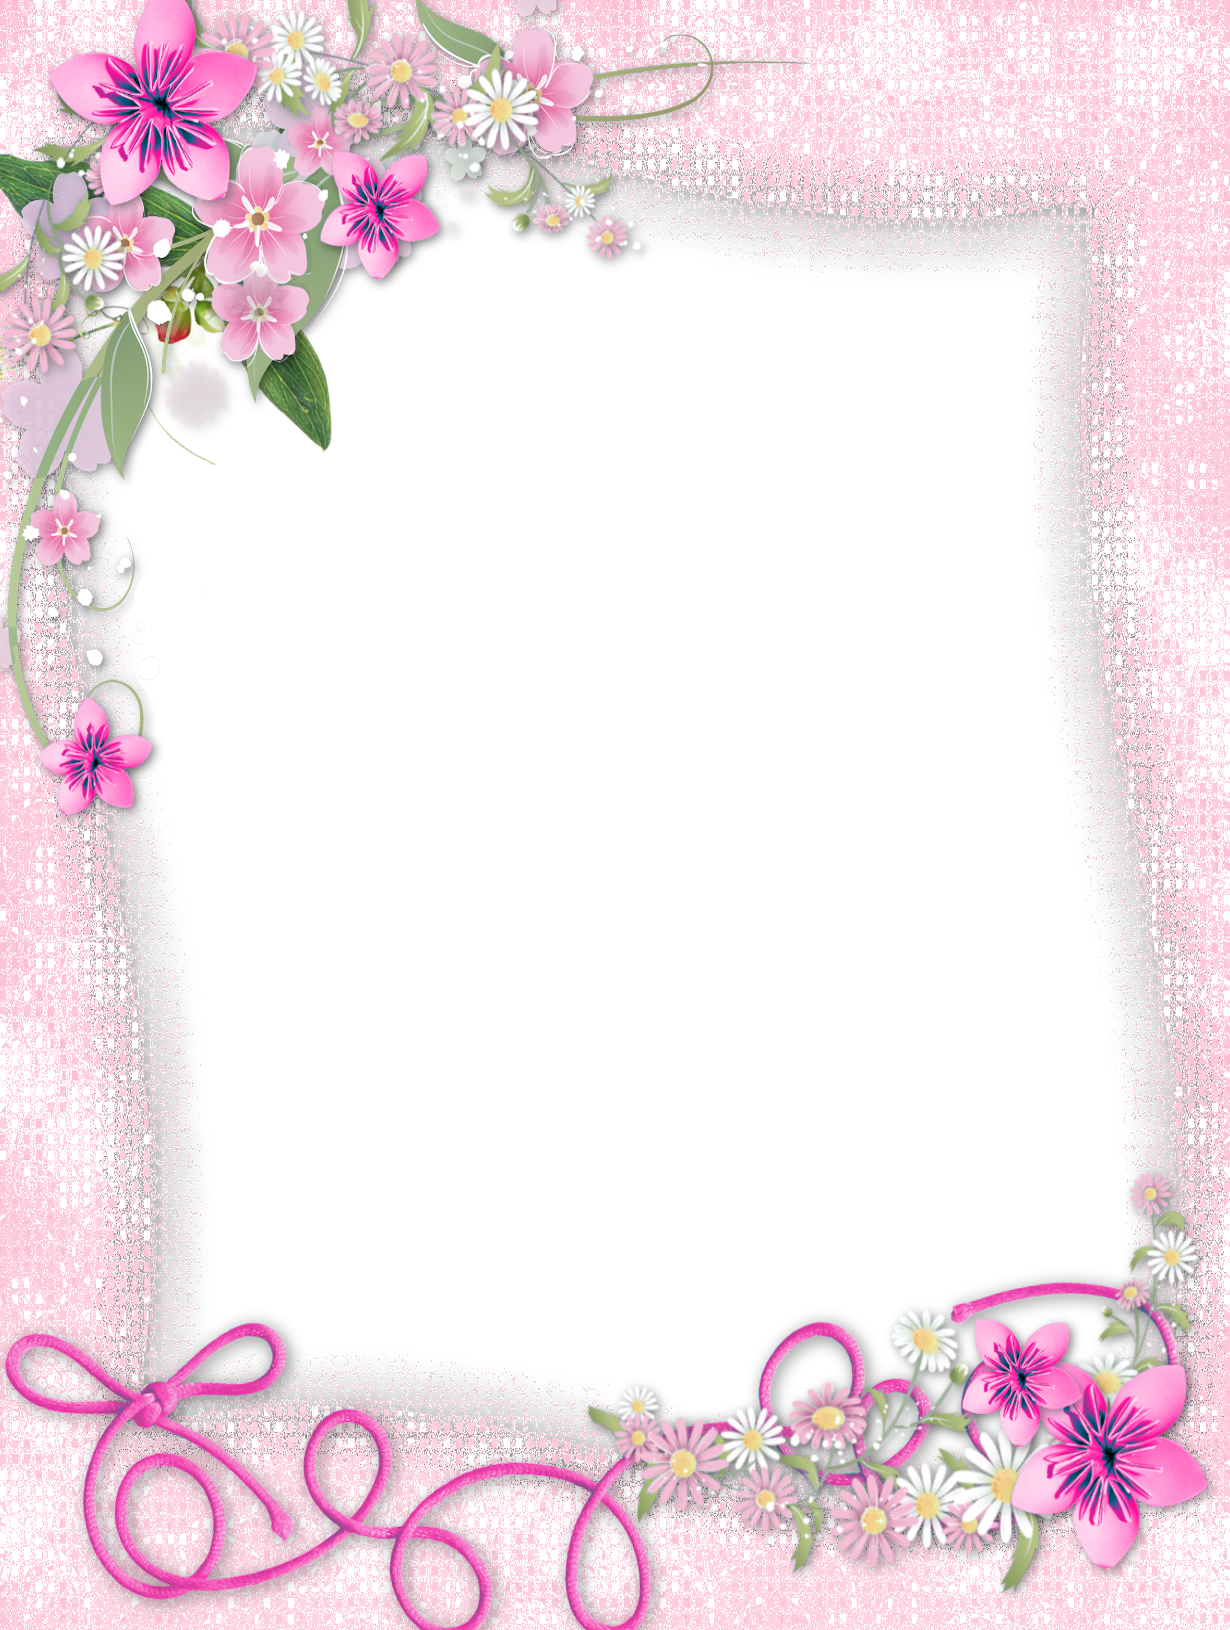 Transparent Pink PNG Frame with Flowers Convites de